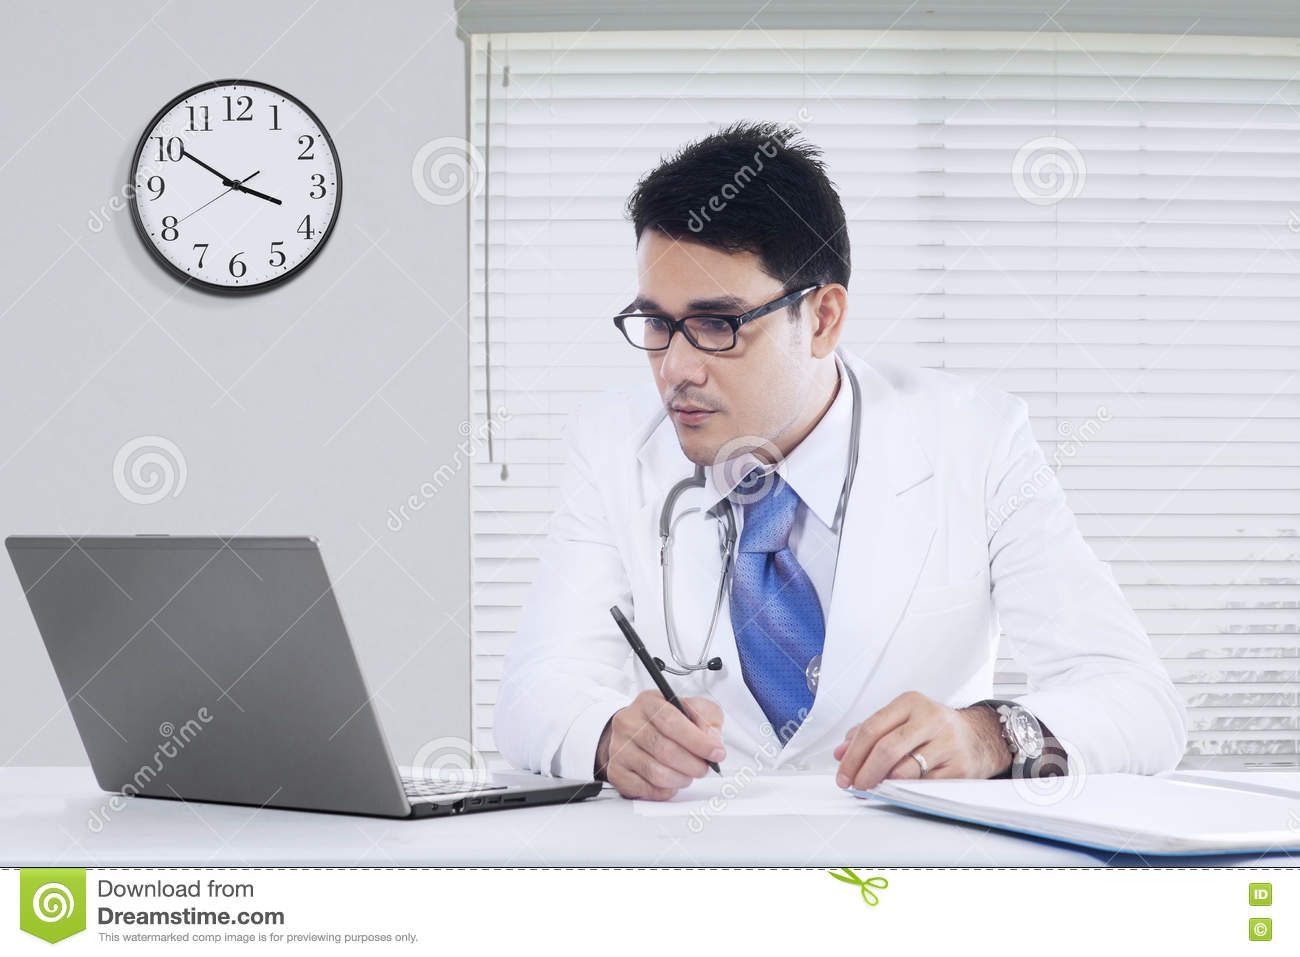 6e5e7e4f1d1a Image of a male physician working in the office while writing a  prescription and looking at the laptop